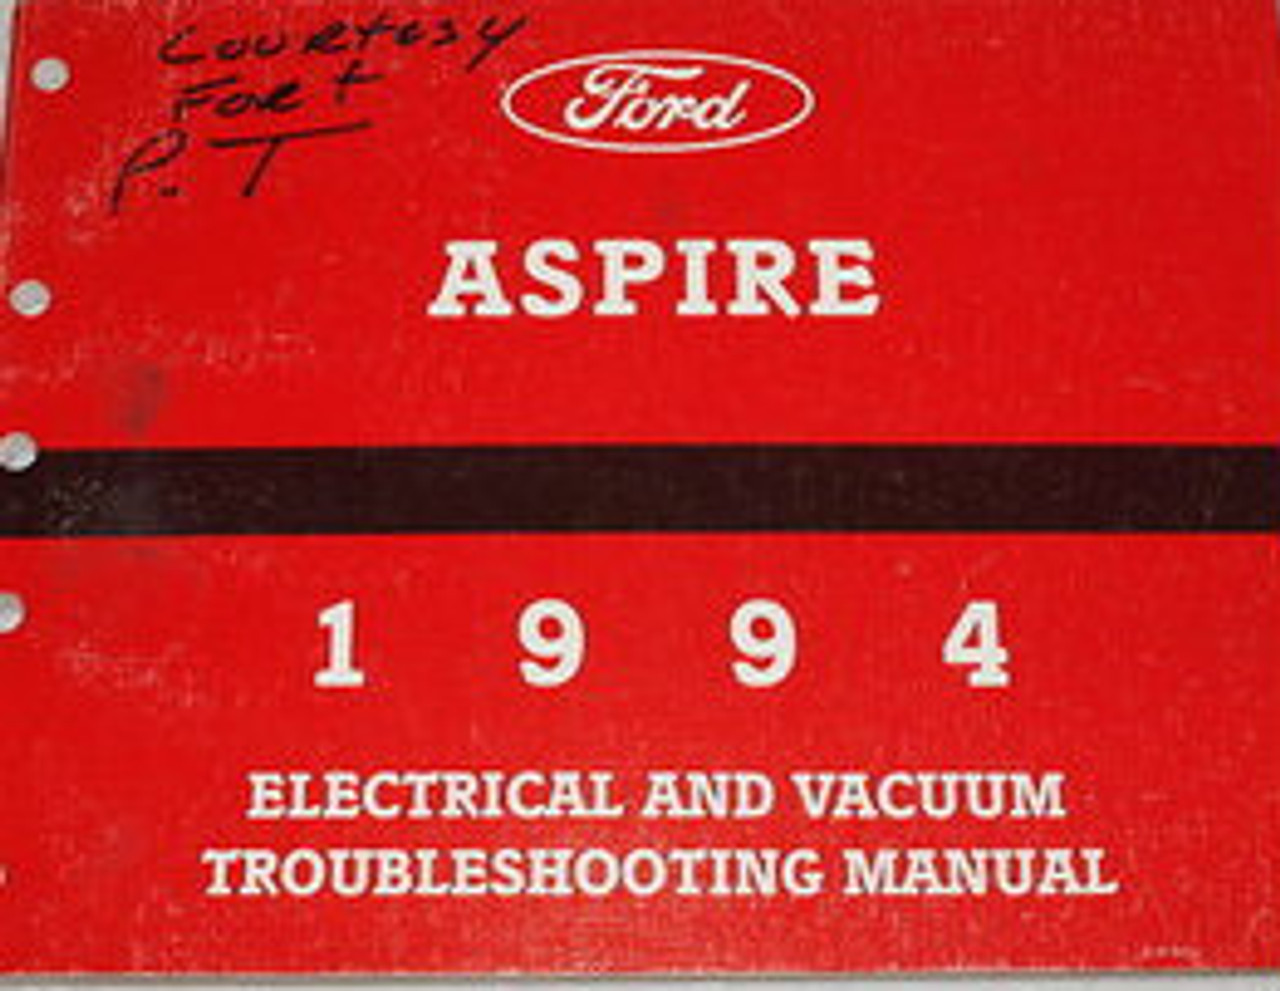 1994 ford aspire wiring diagram 1994 ford aspire electrical troubleshooting   vacuum manual wiring  ford aspire electrical troubleshooting